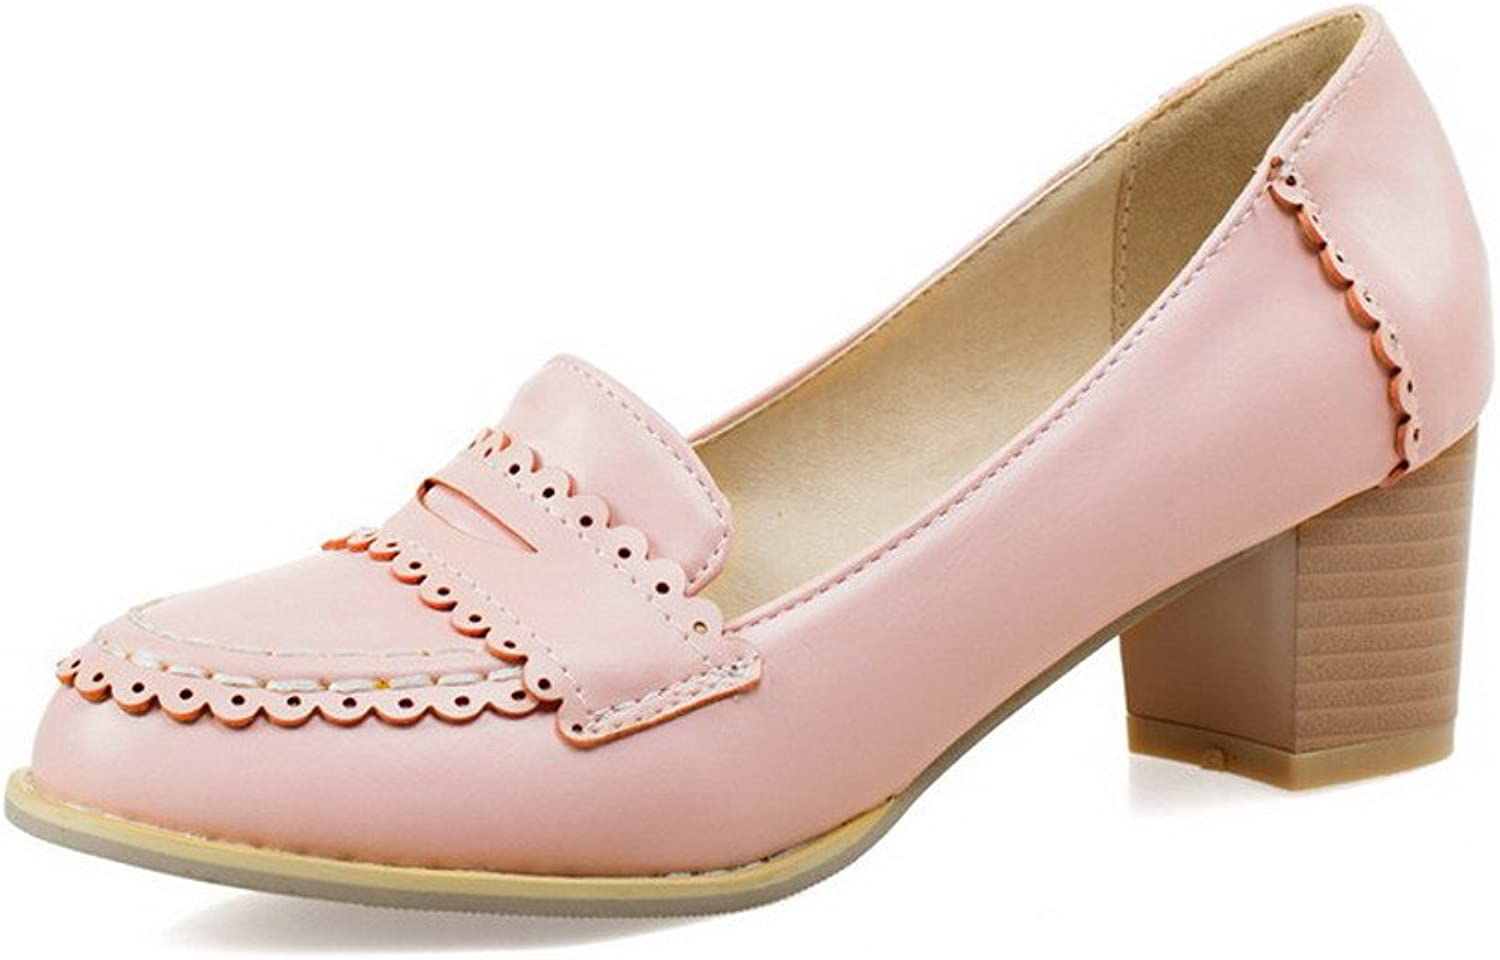 AllhqFashion Women's Soft Material Round Closed Toe Kitten Heels Pull On Pumps-shoes